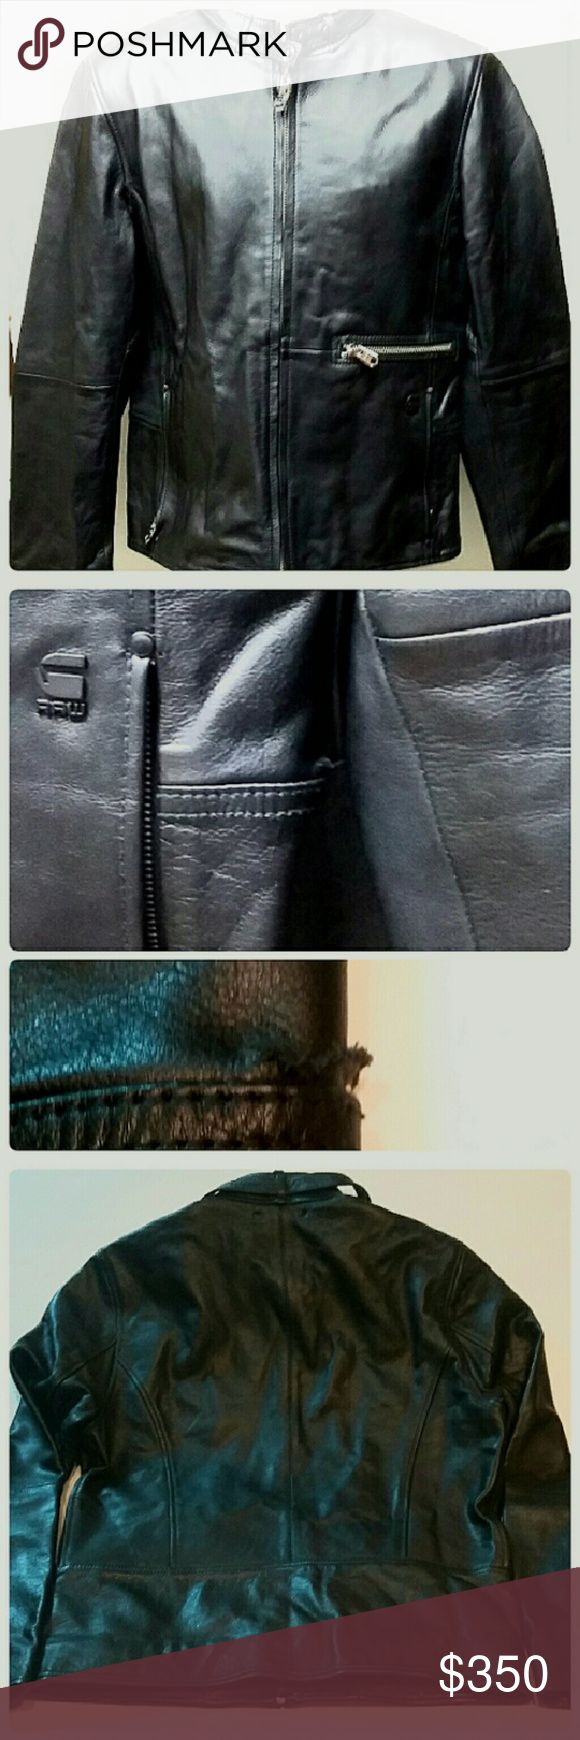 Men's G-Star Raw Correct  Leather Bike Jacket Sl This is a genuine leather G Star Raw correct motorbike jacket. This jacket is pre-owned and retails when new from $700 to $1,000 depending on the retailer. The jacket is in excellent condition. There is a very small tear above the left side pocket. It is ess than 1 inch in length. The jacket is marked a size XL. This jacket is offered at only  $350 due to the small tear described above. As you can see, it is barely  noticeable especially when…